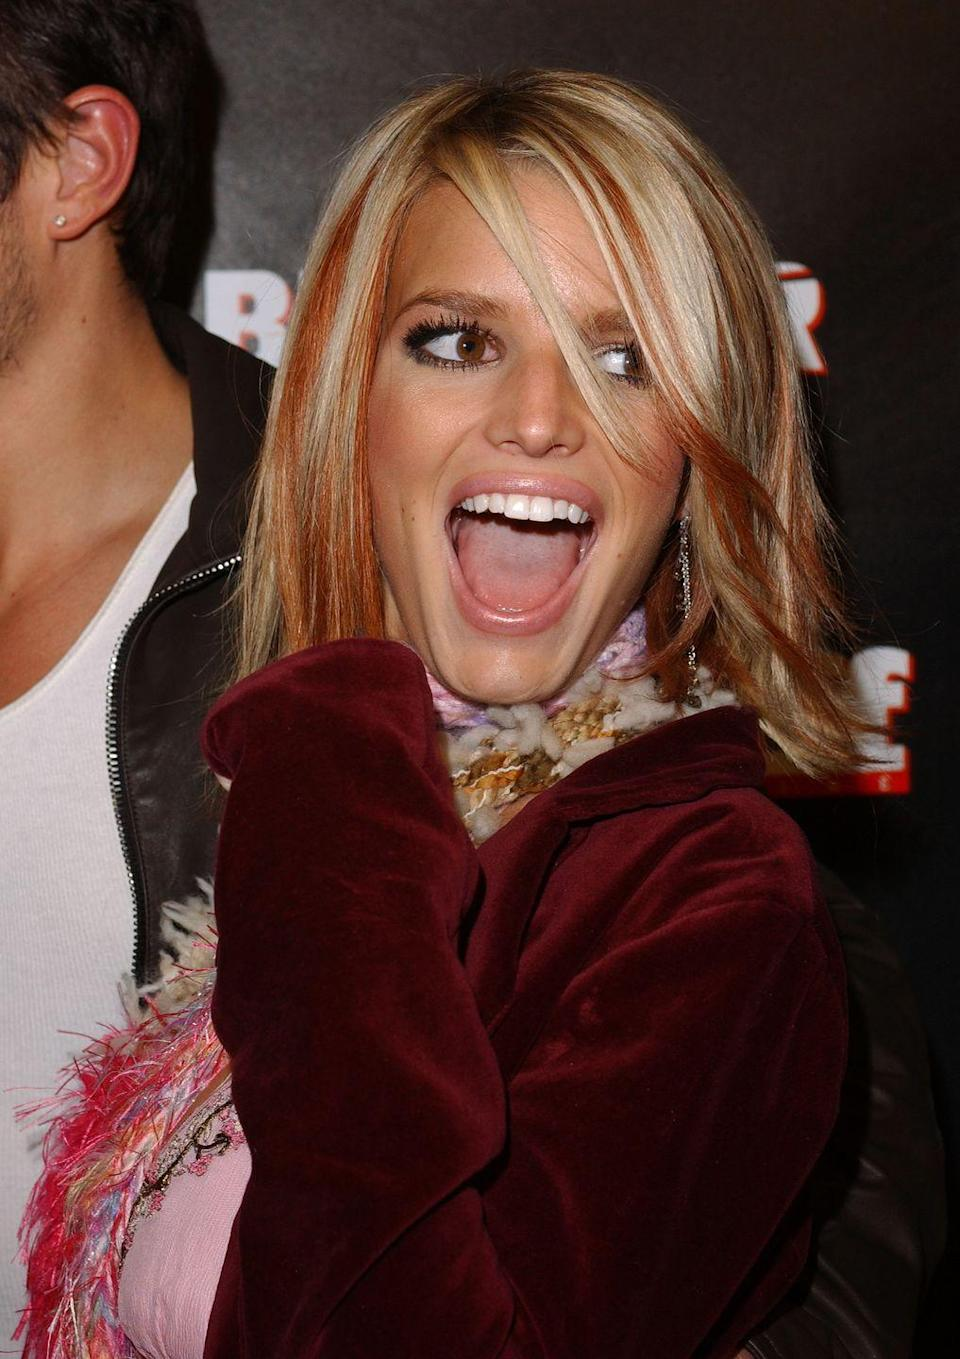 <p>This time period was <em>very</em> punk rock—even if you, like Jessica Simpson, were the furthest thing from that. Adding a few colorful strands to your hair was an easy way to achieve this edgy look. </p>